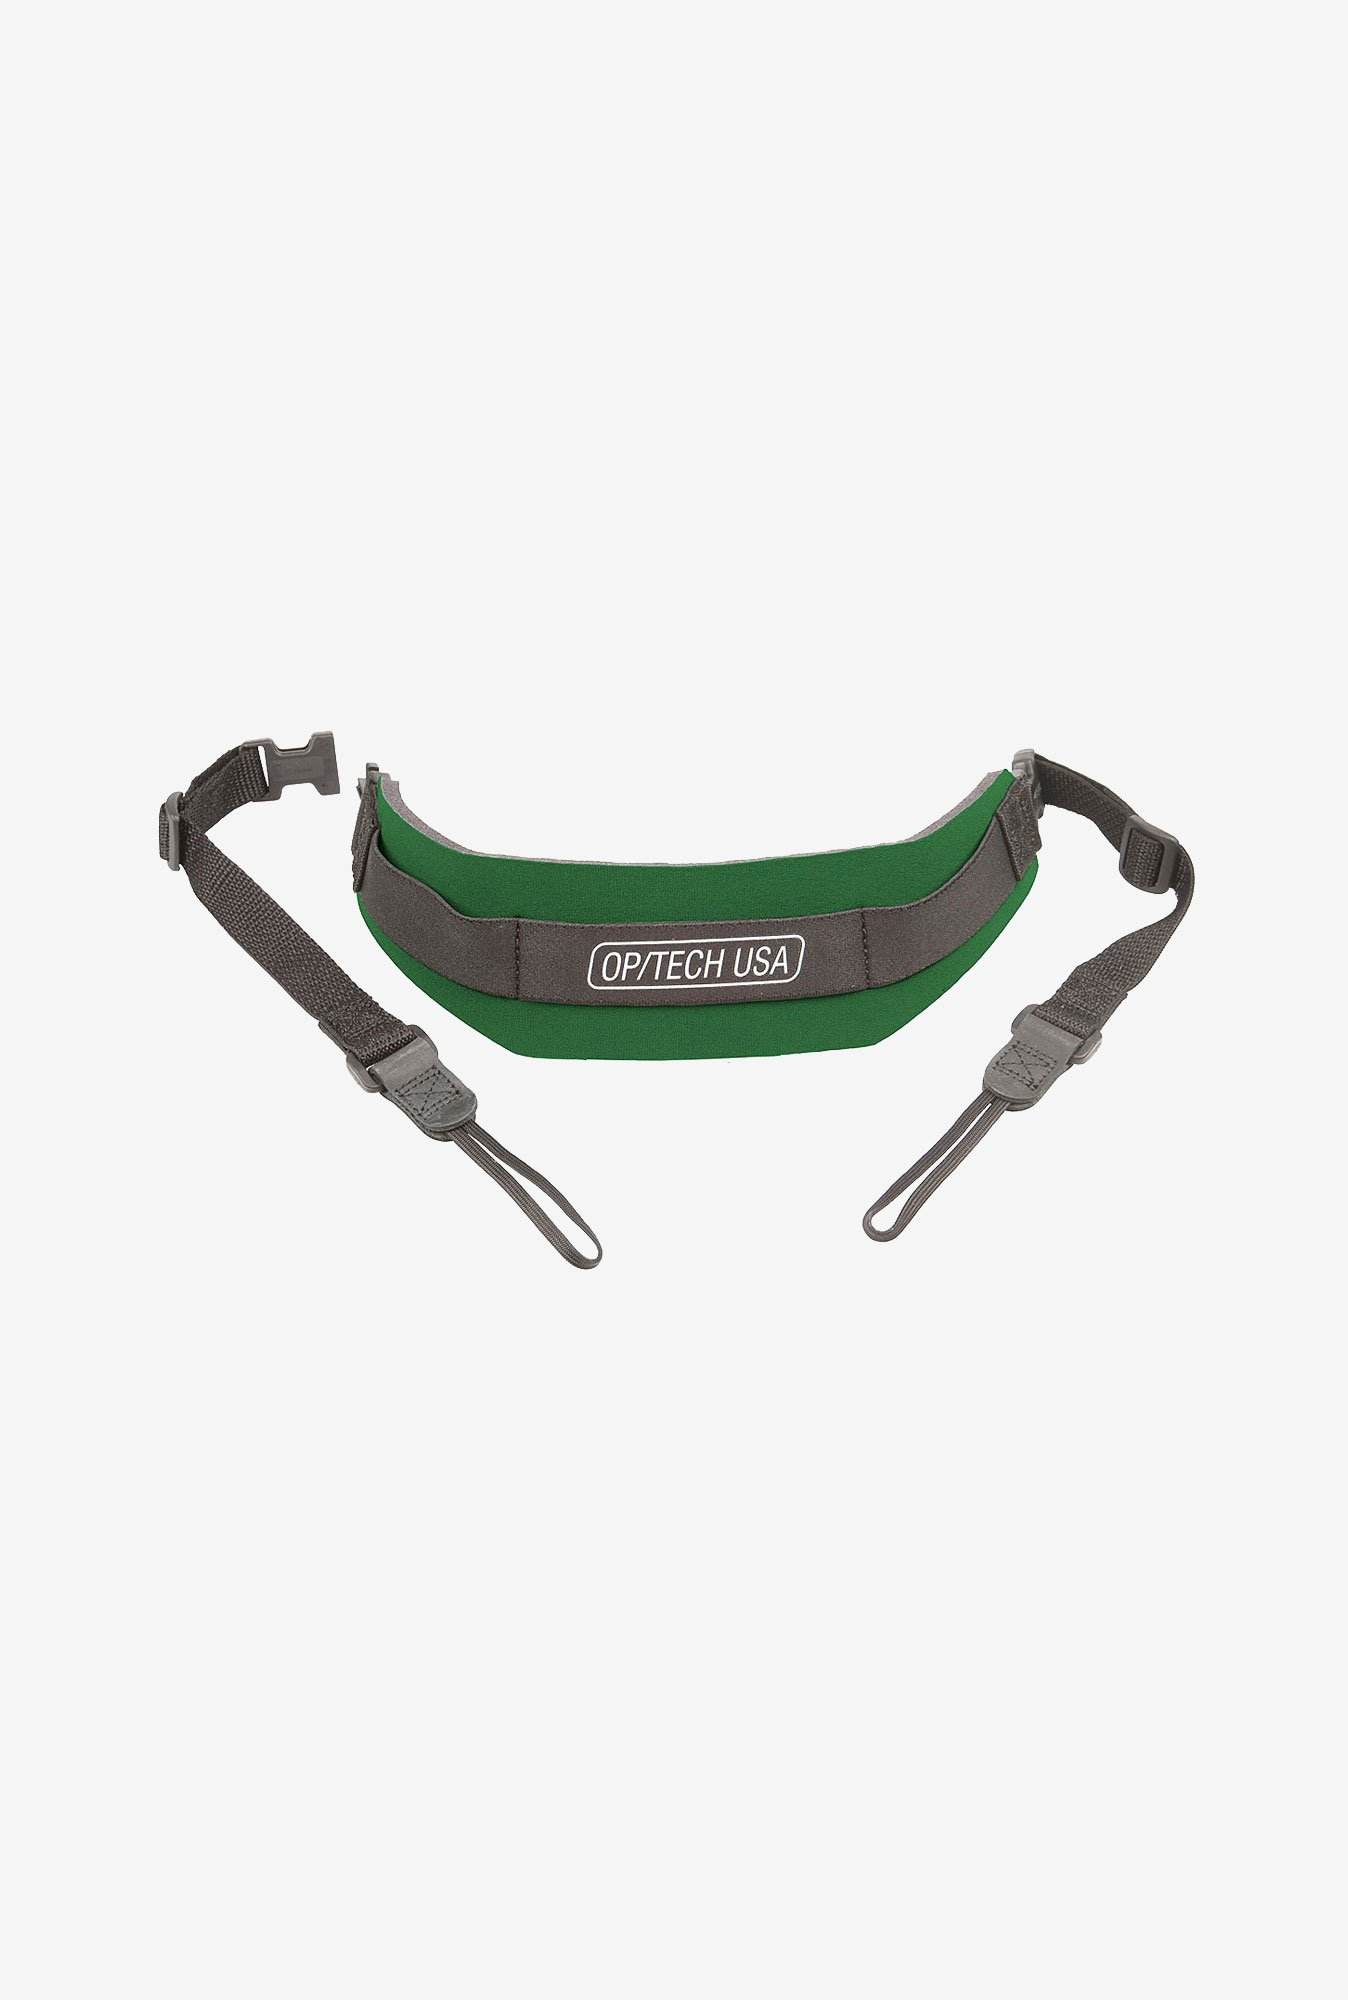 Op/Tech Usa 1519372 Pro Loop Strap (Forest)